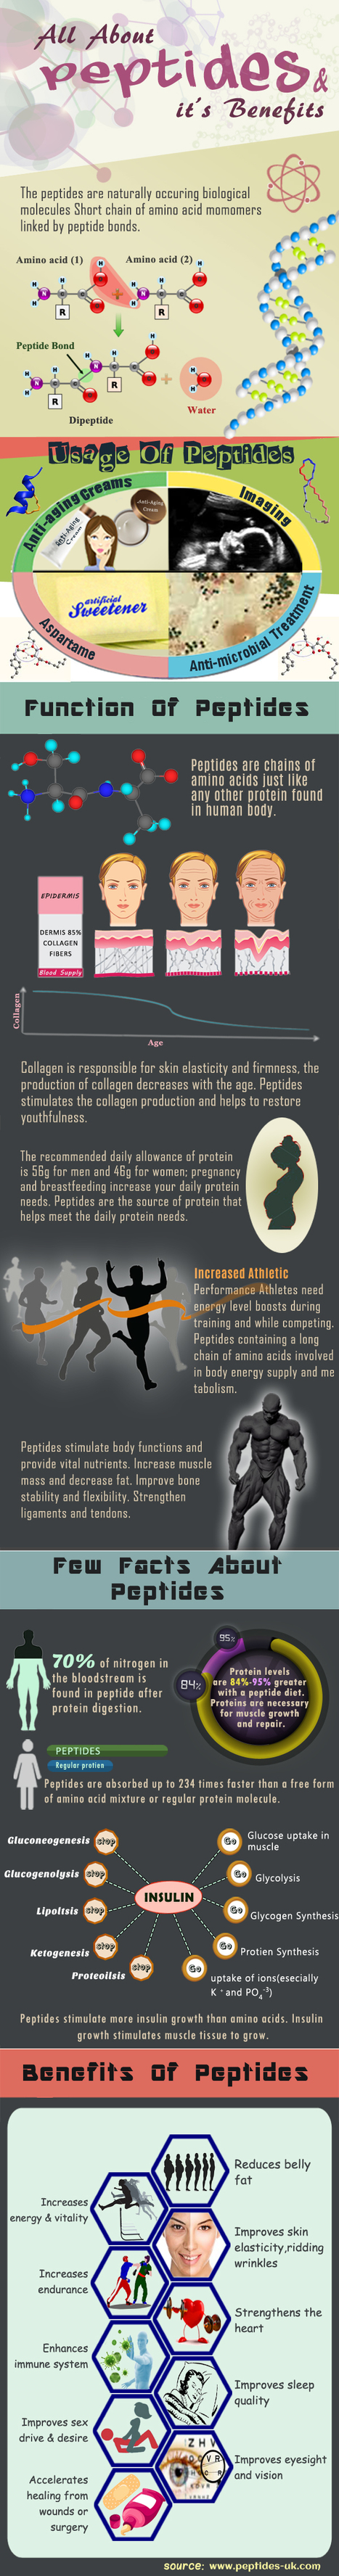 All about peptides and it's benefits | Scoops | Scoop.it